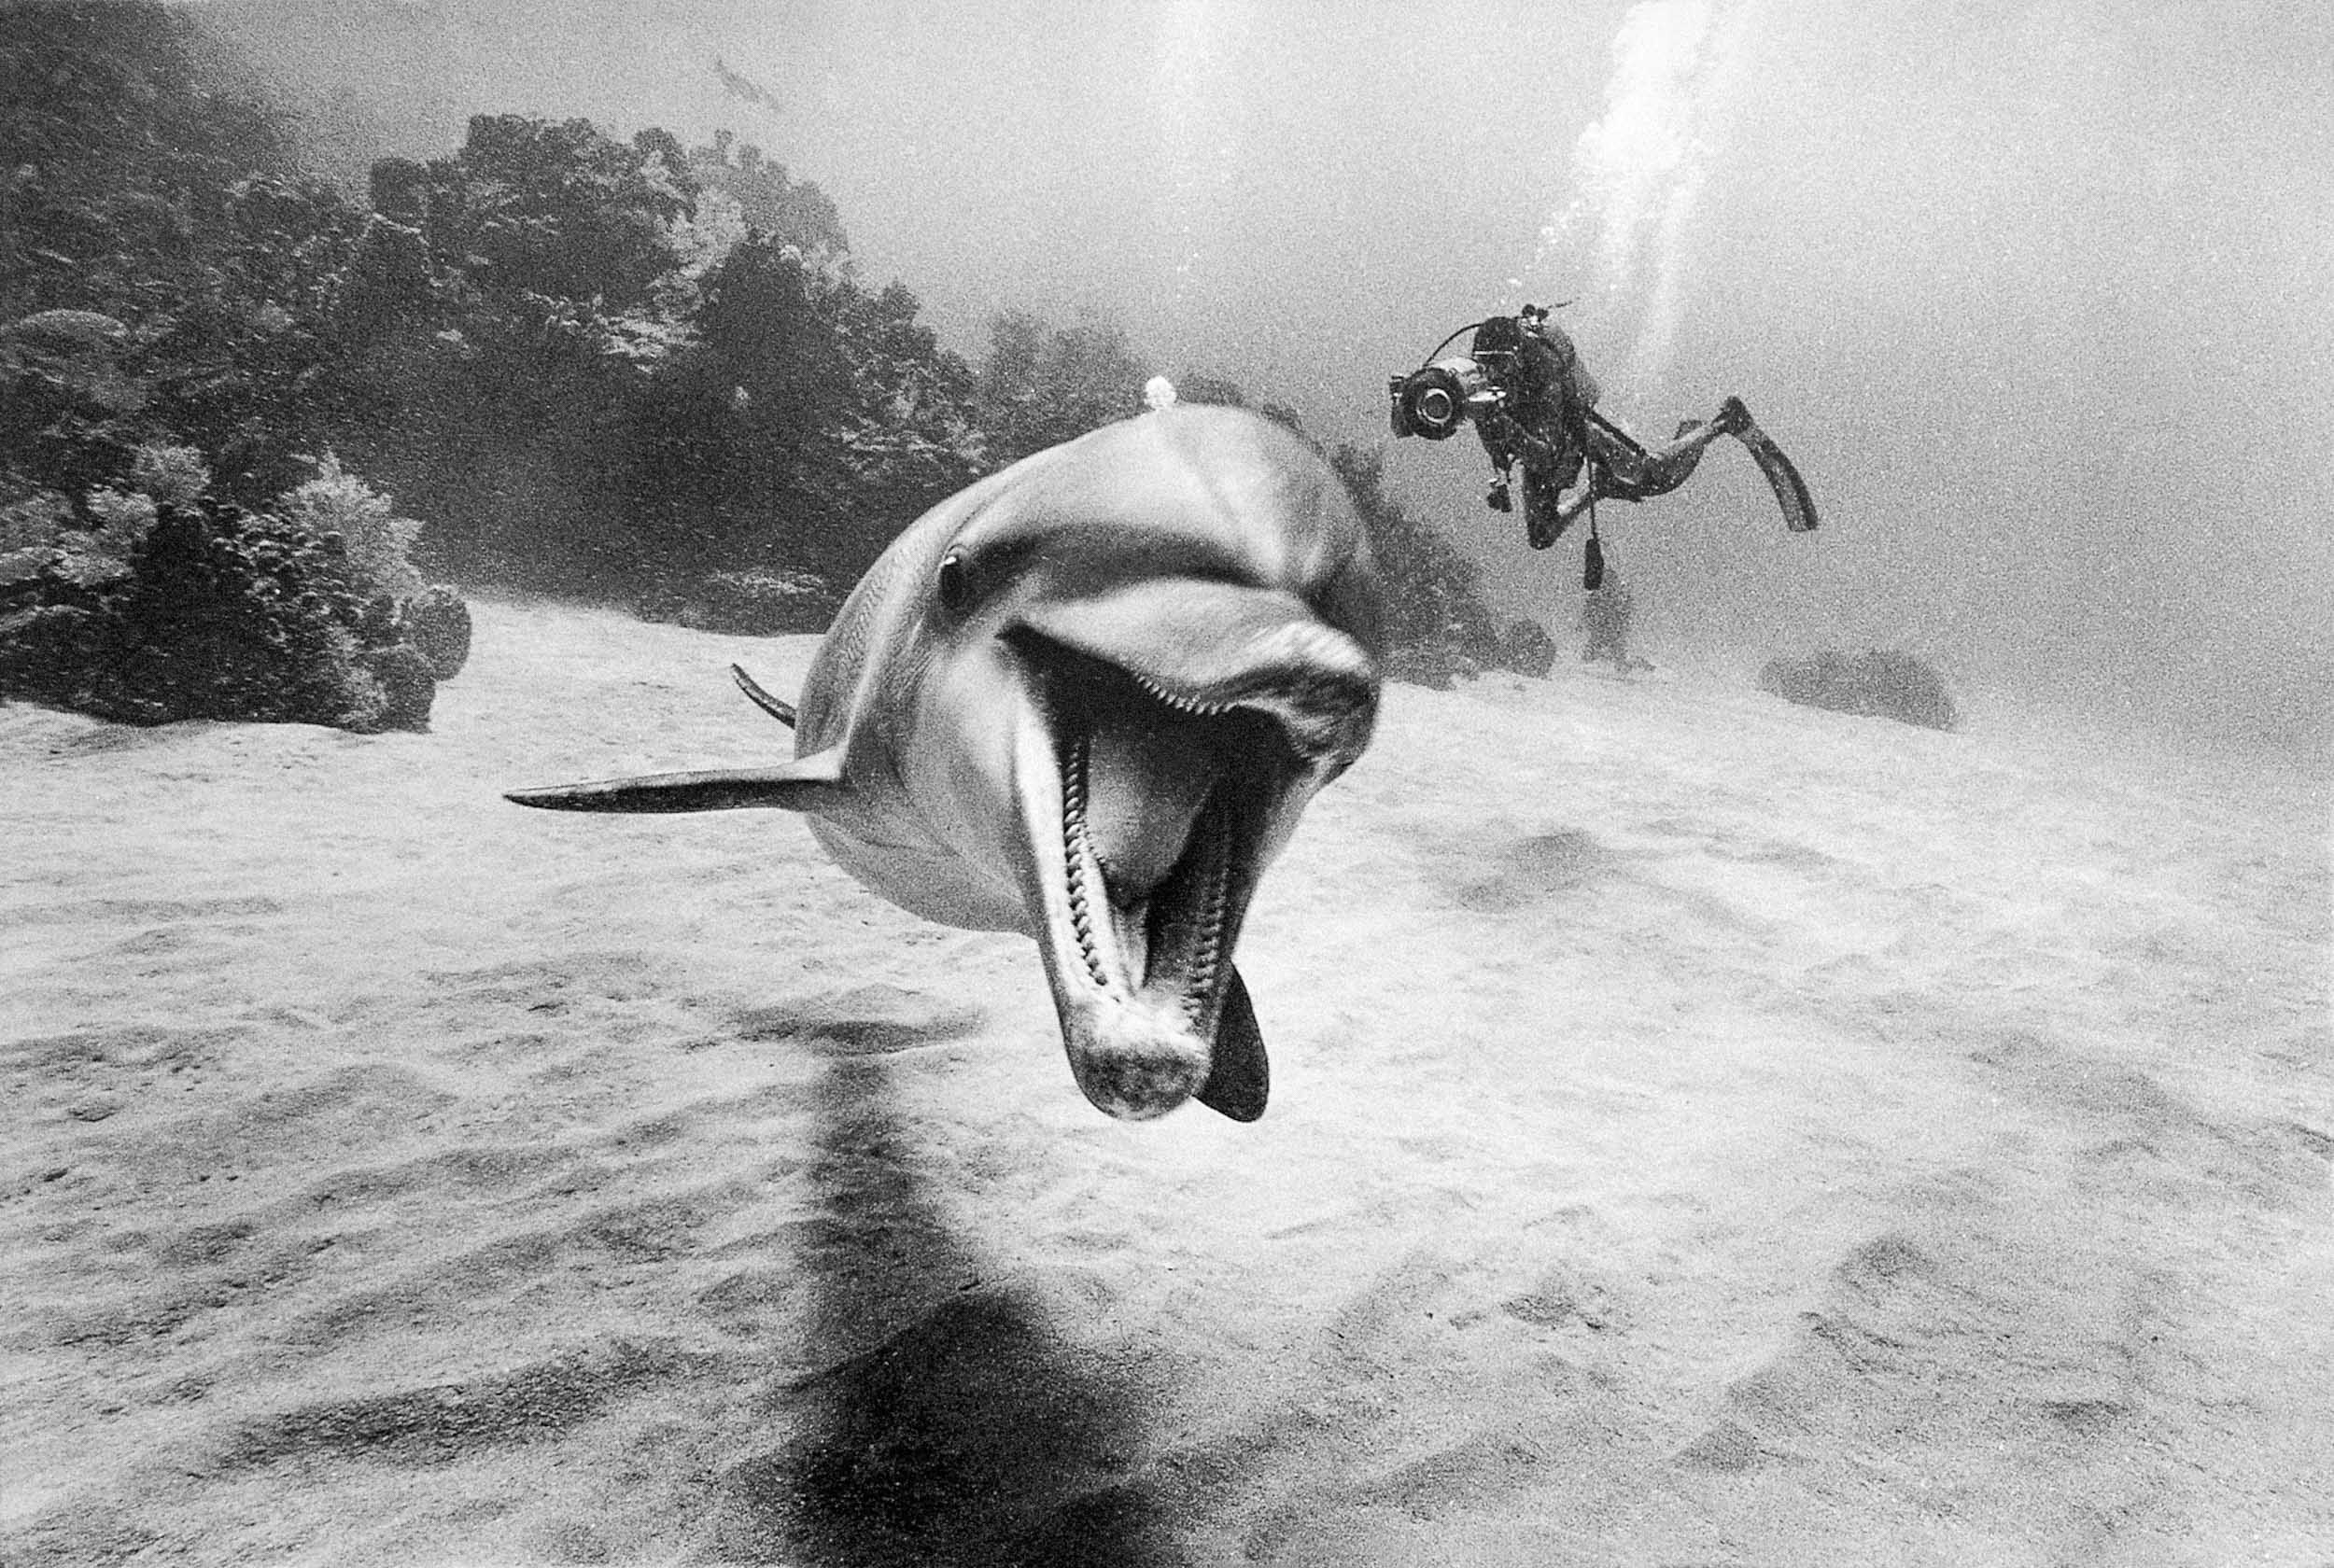 Barbara Alper- Photo of Dolphin smiling with divers in Roatan Honduras